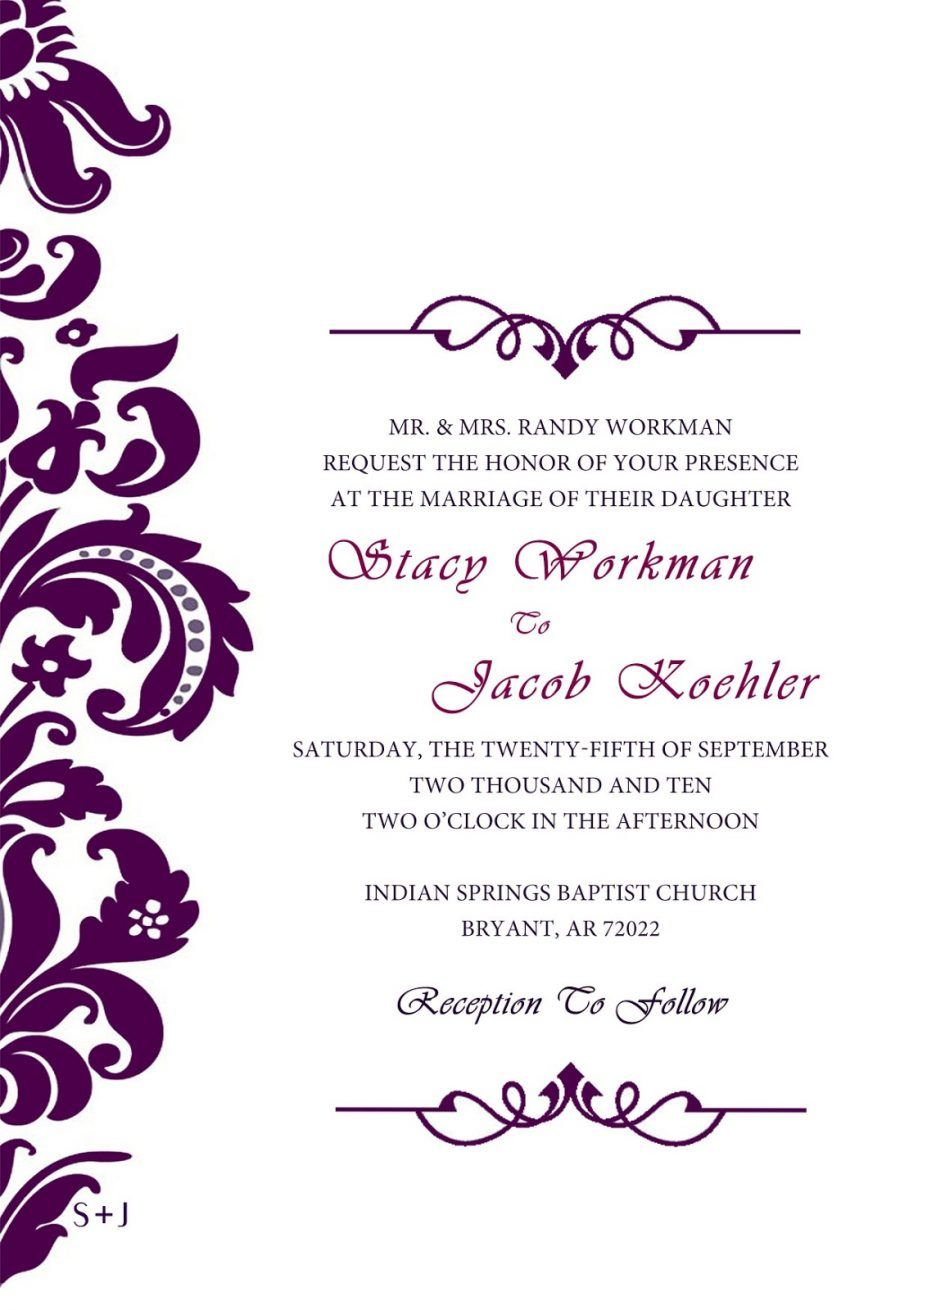 wedding invitation templates invitations wedding formal wedding